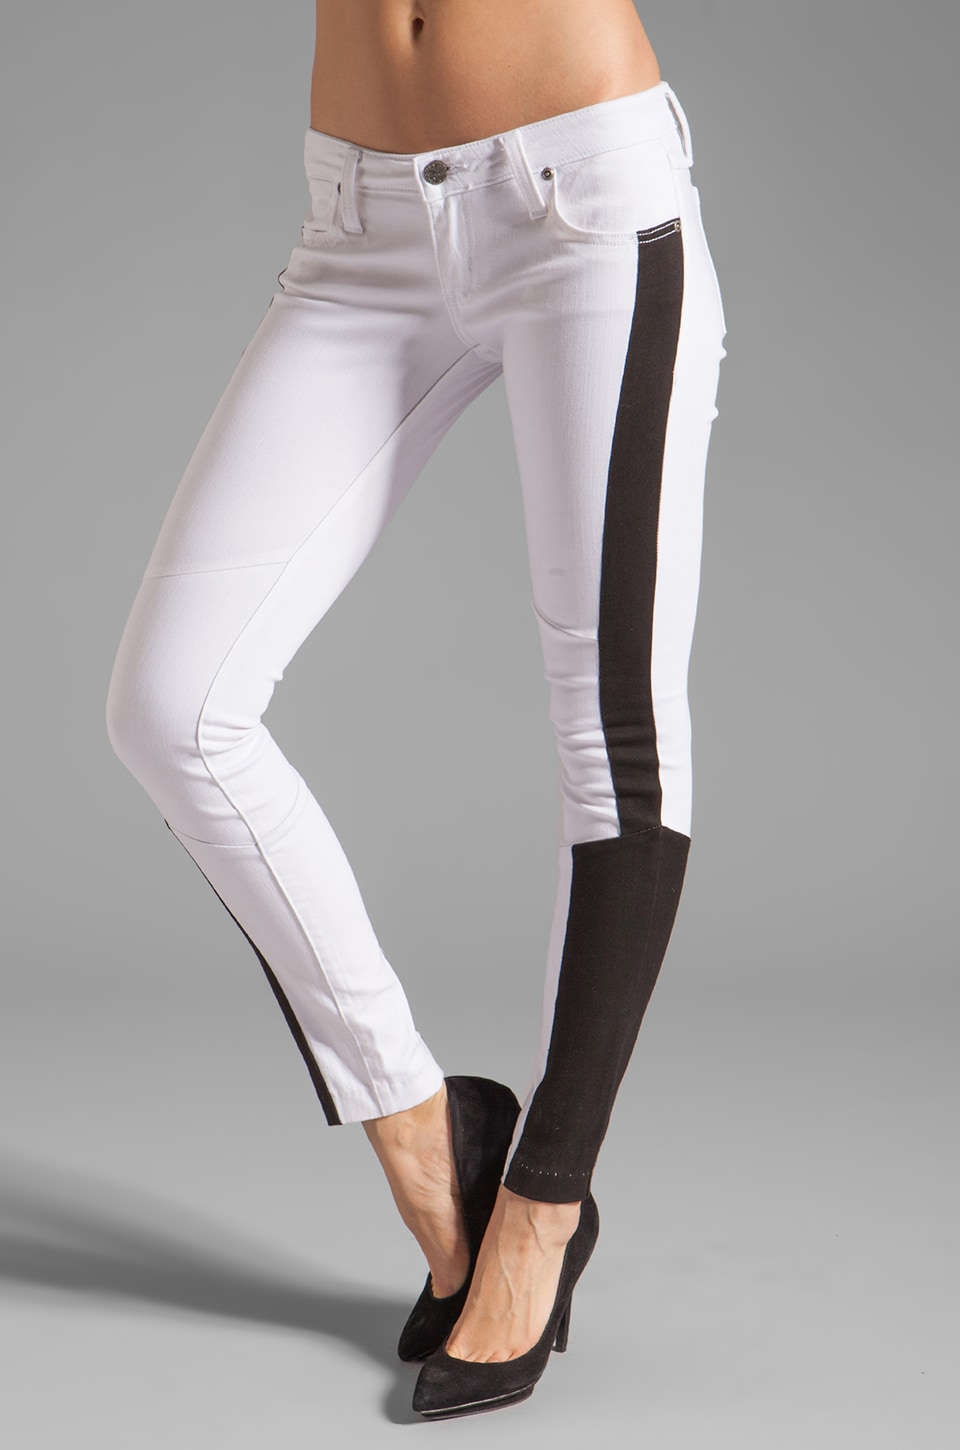 Frankie B. Jeans Empire Skinny in White